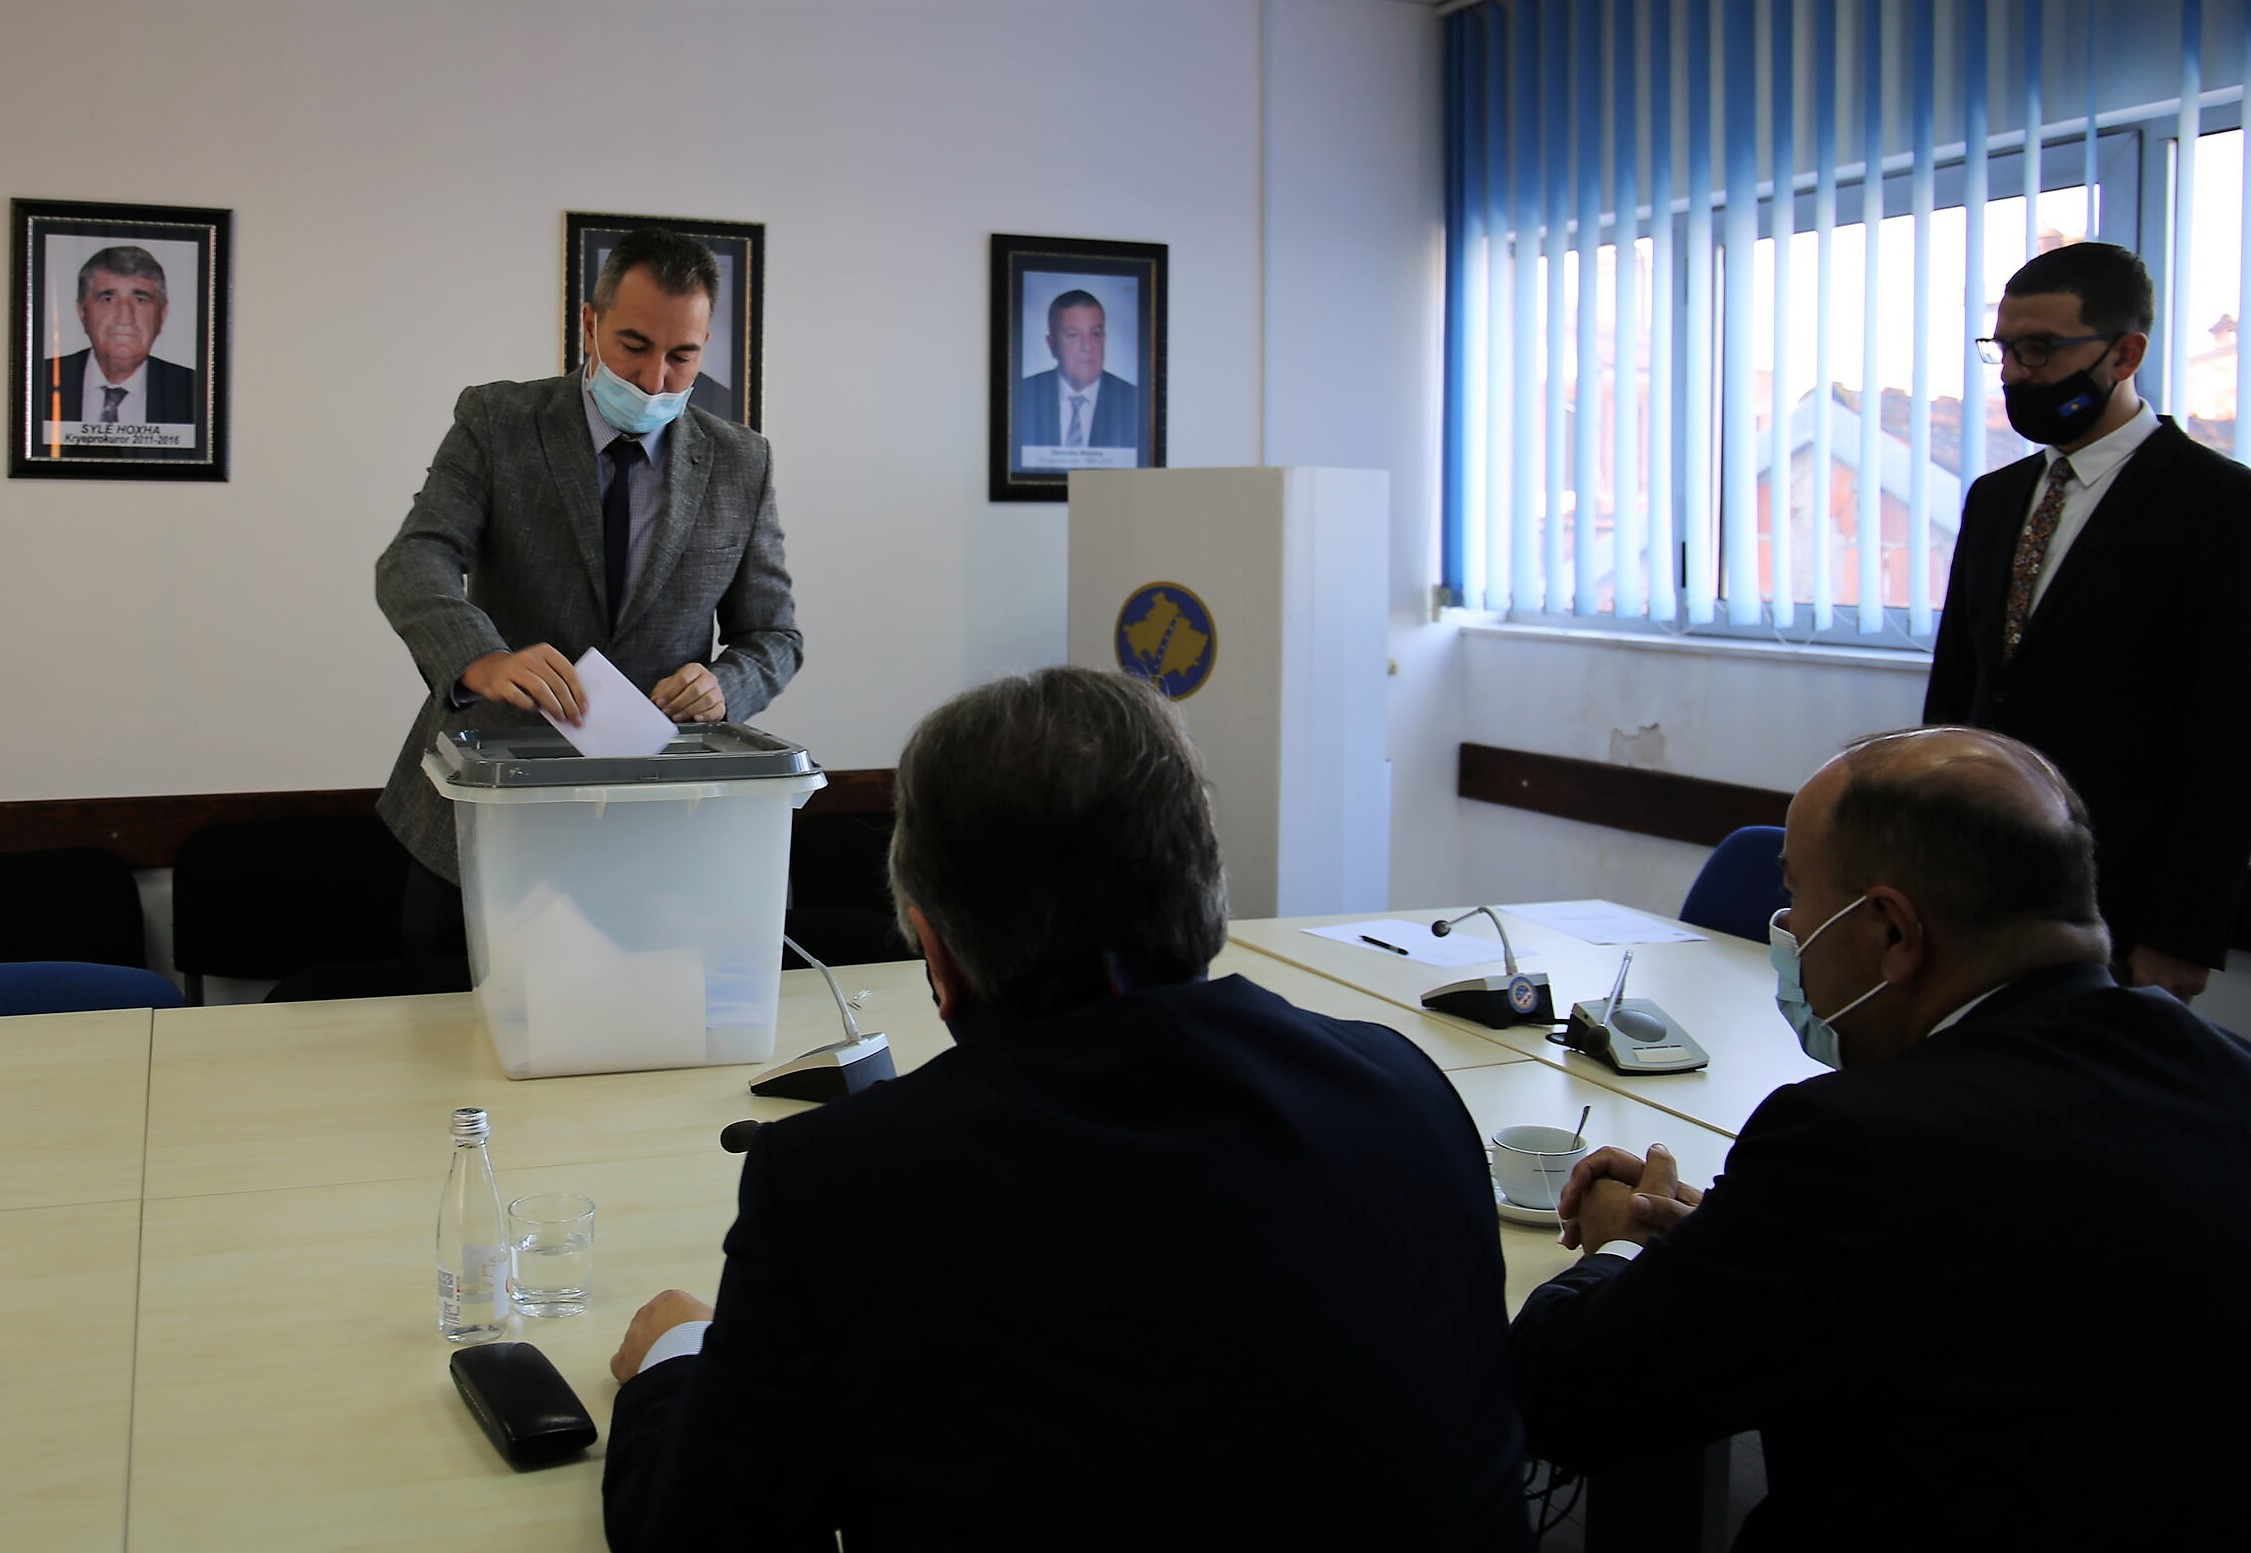 Voting process for the election of KPC members from the ranks of the Basic Prosecution of Prizren and Gjakova takes place